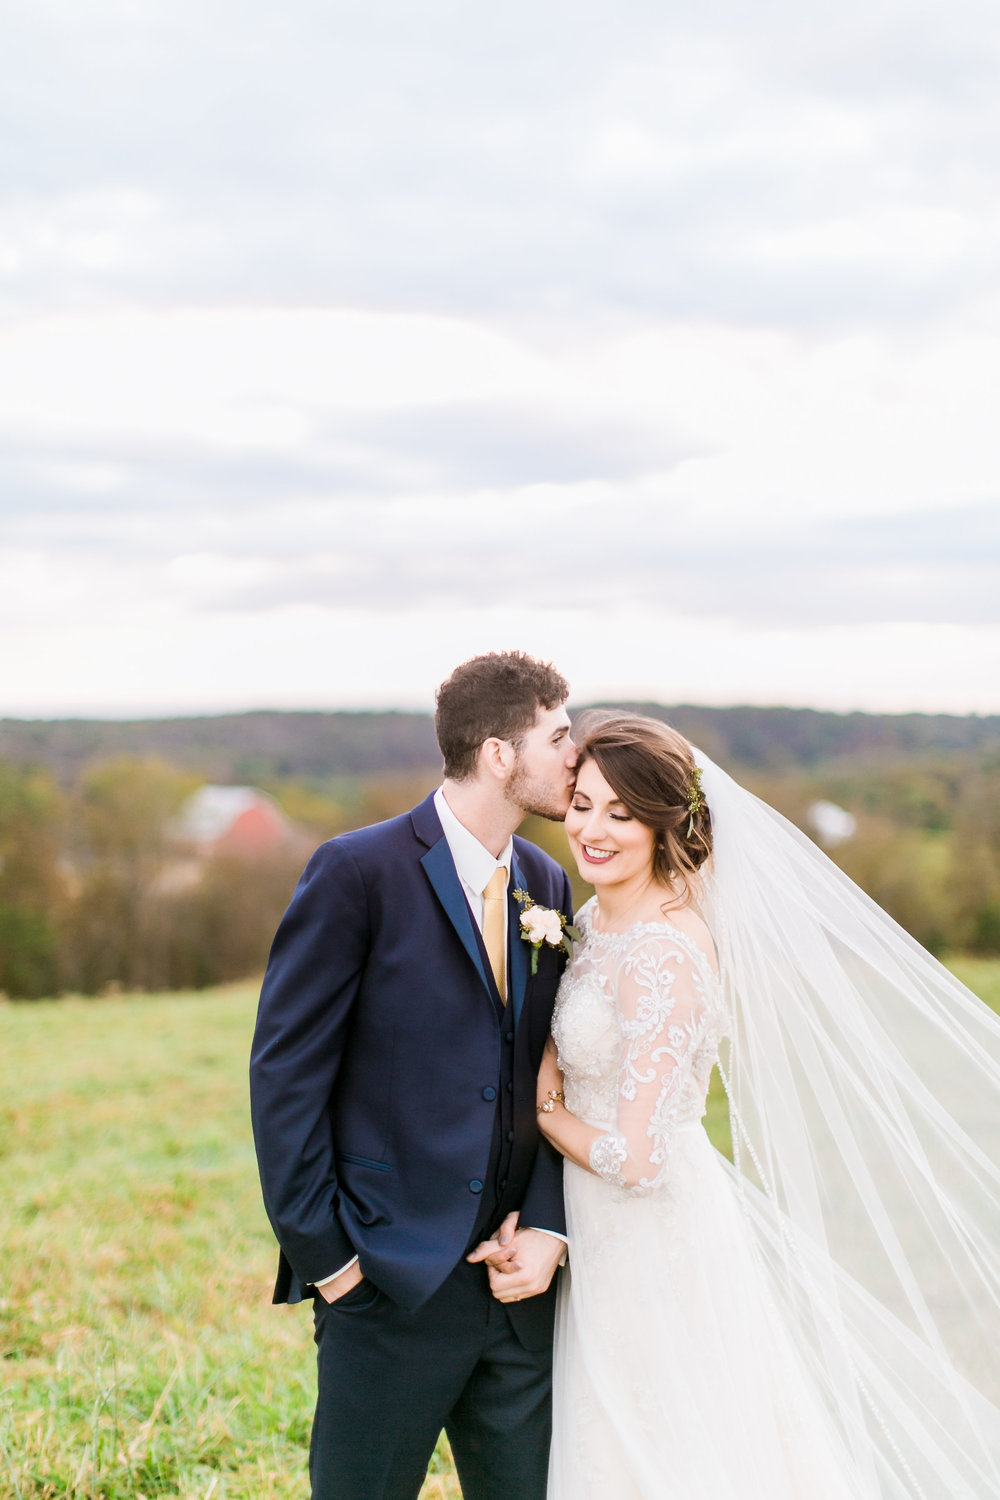 MissouriRusticWedding_StLouisWeddingPhotographer_AliciaDan_CatherineRhodesPhotography-4397-Edit.jpg